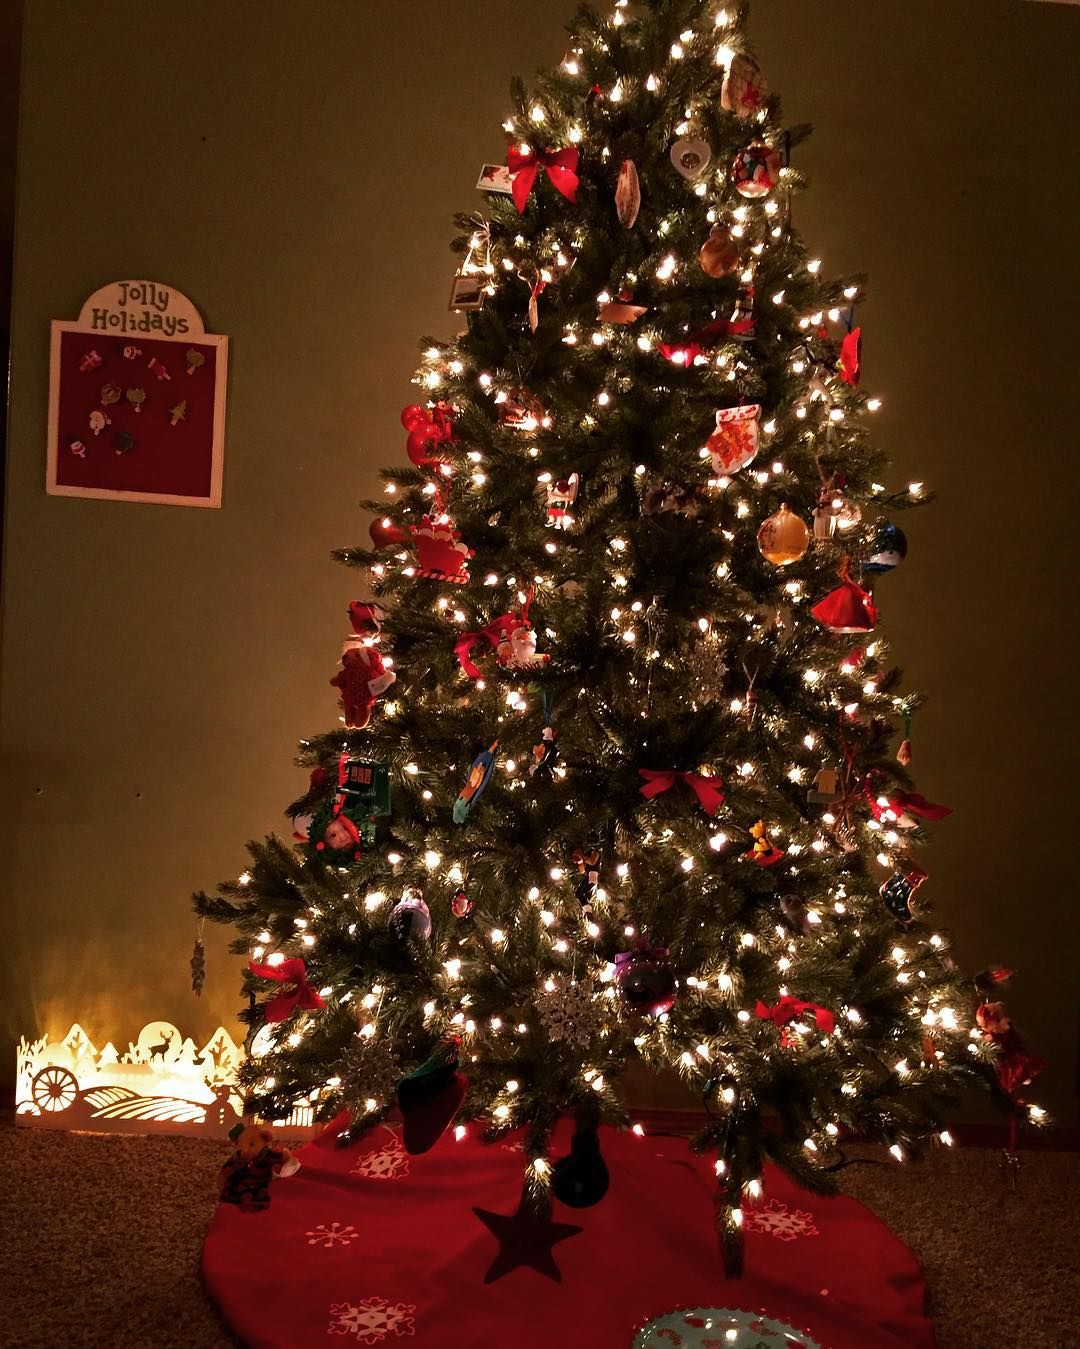 I've never put up my Christmas tree this early before. But since we had a tiny tree and limited ...